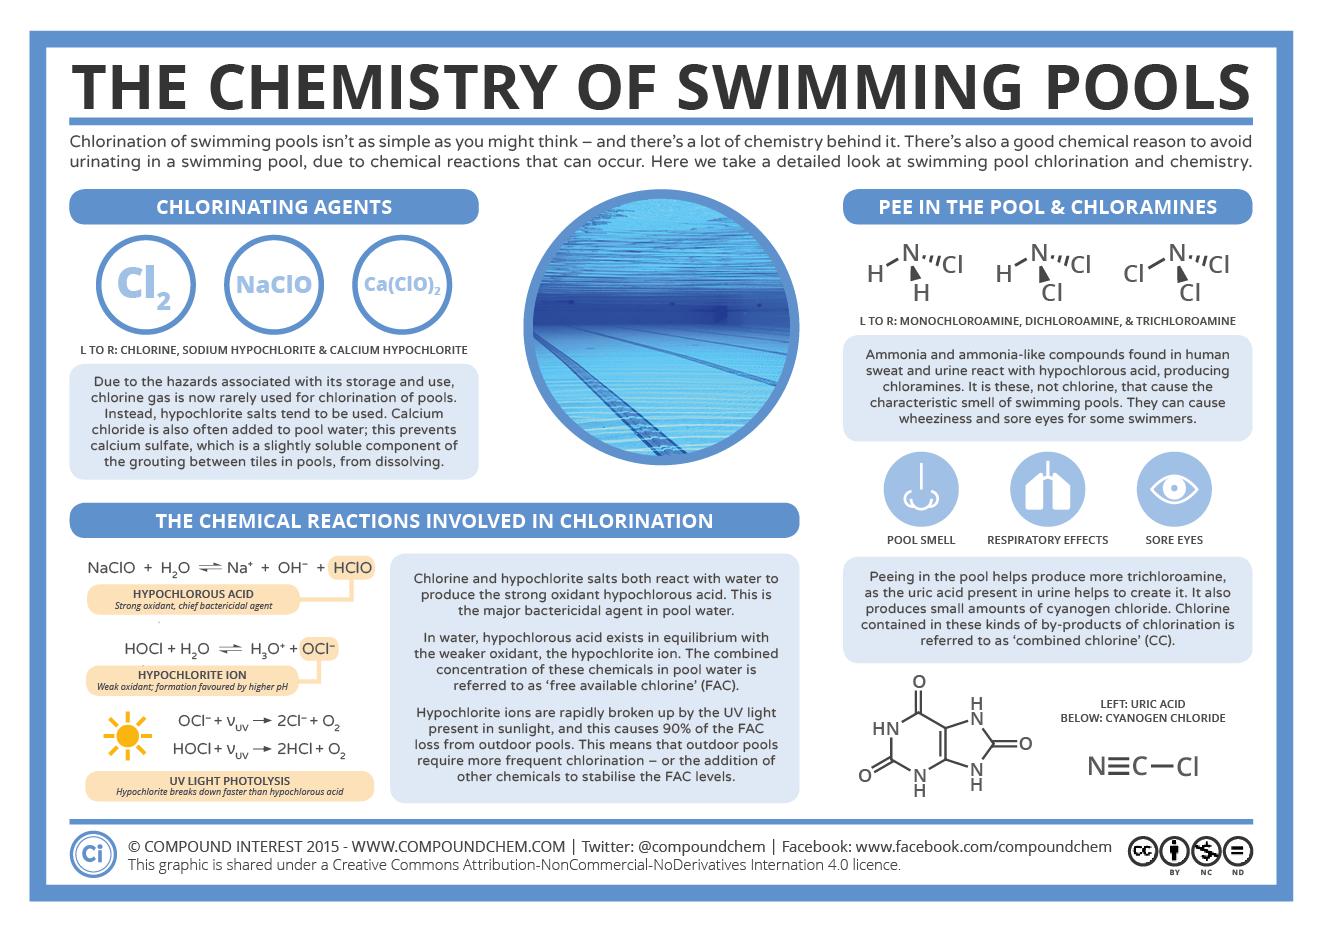 Compound Interest Chlorination Pee In The Pool The Chemistry Of Swimming Pools